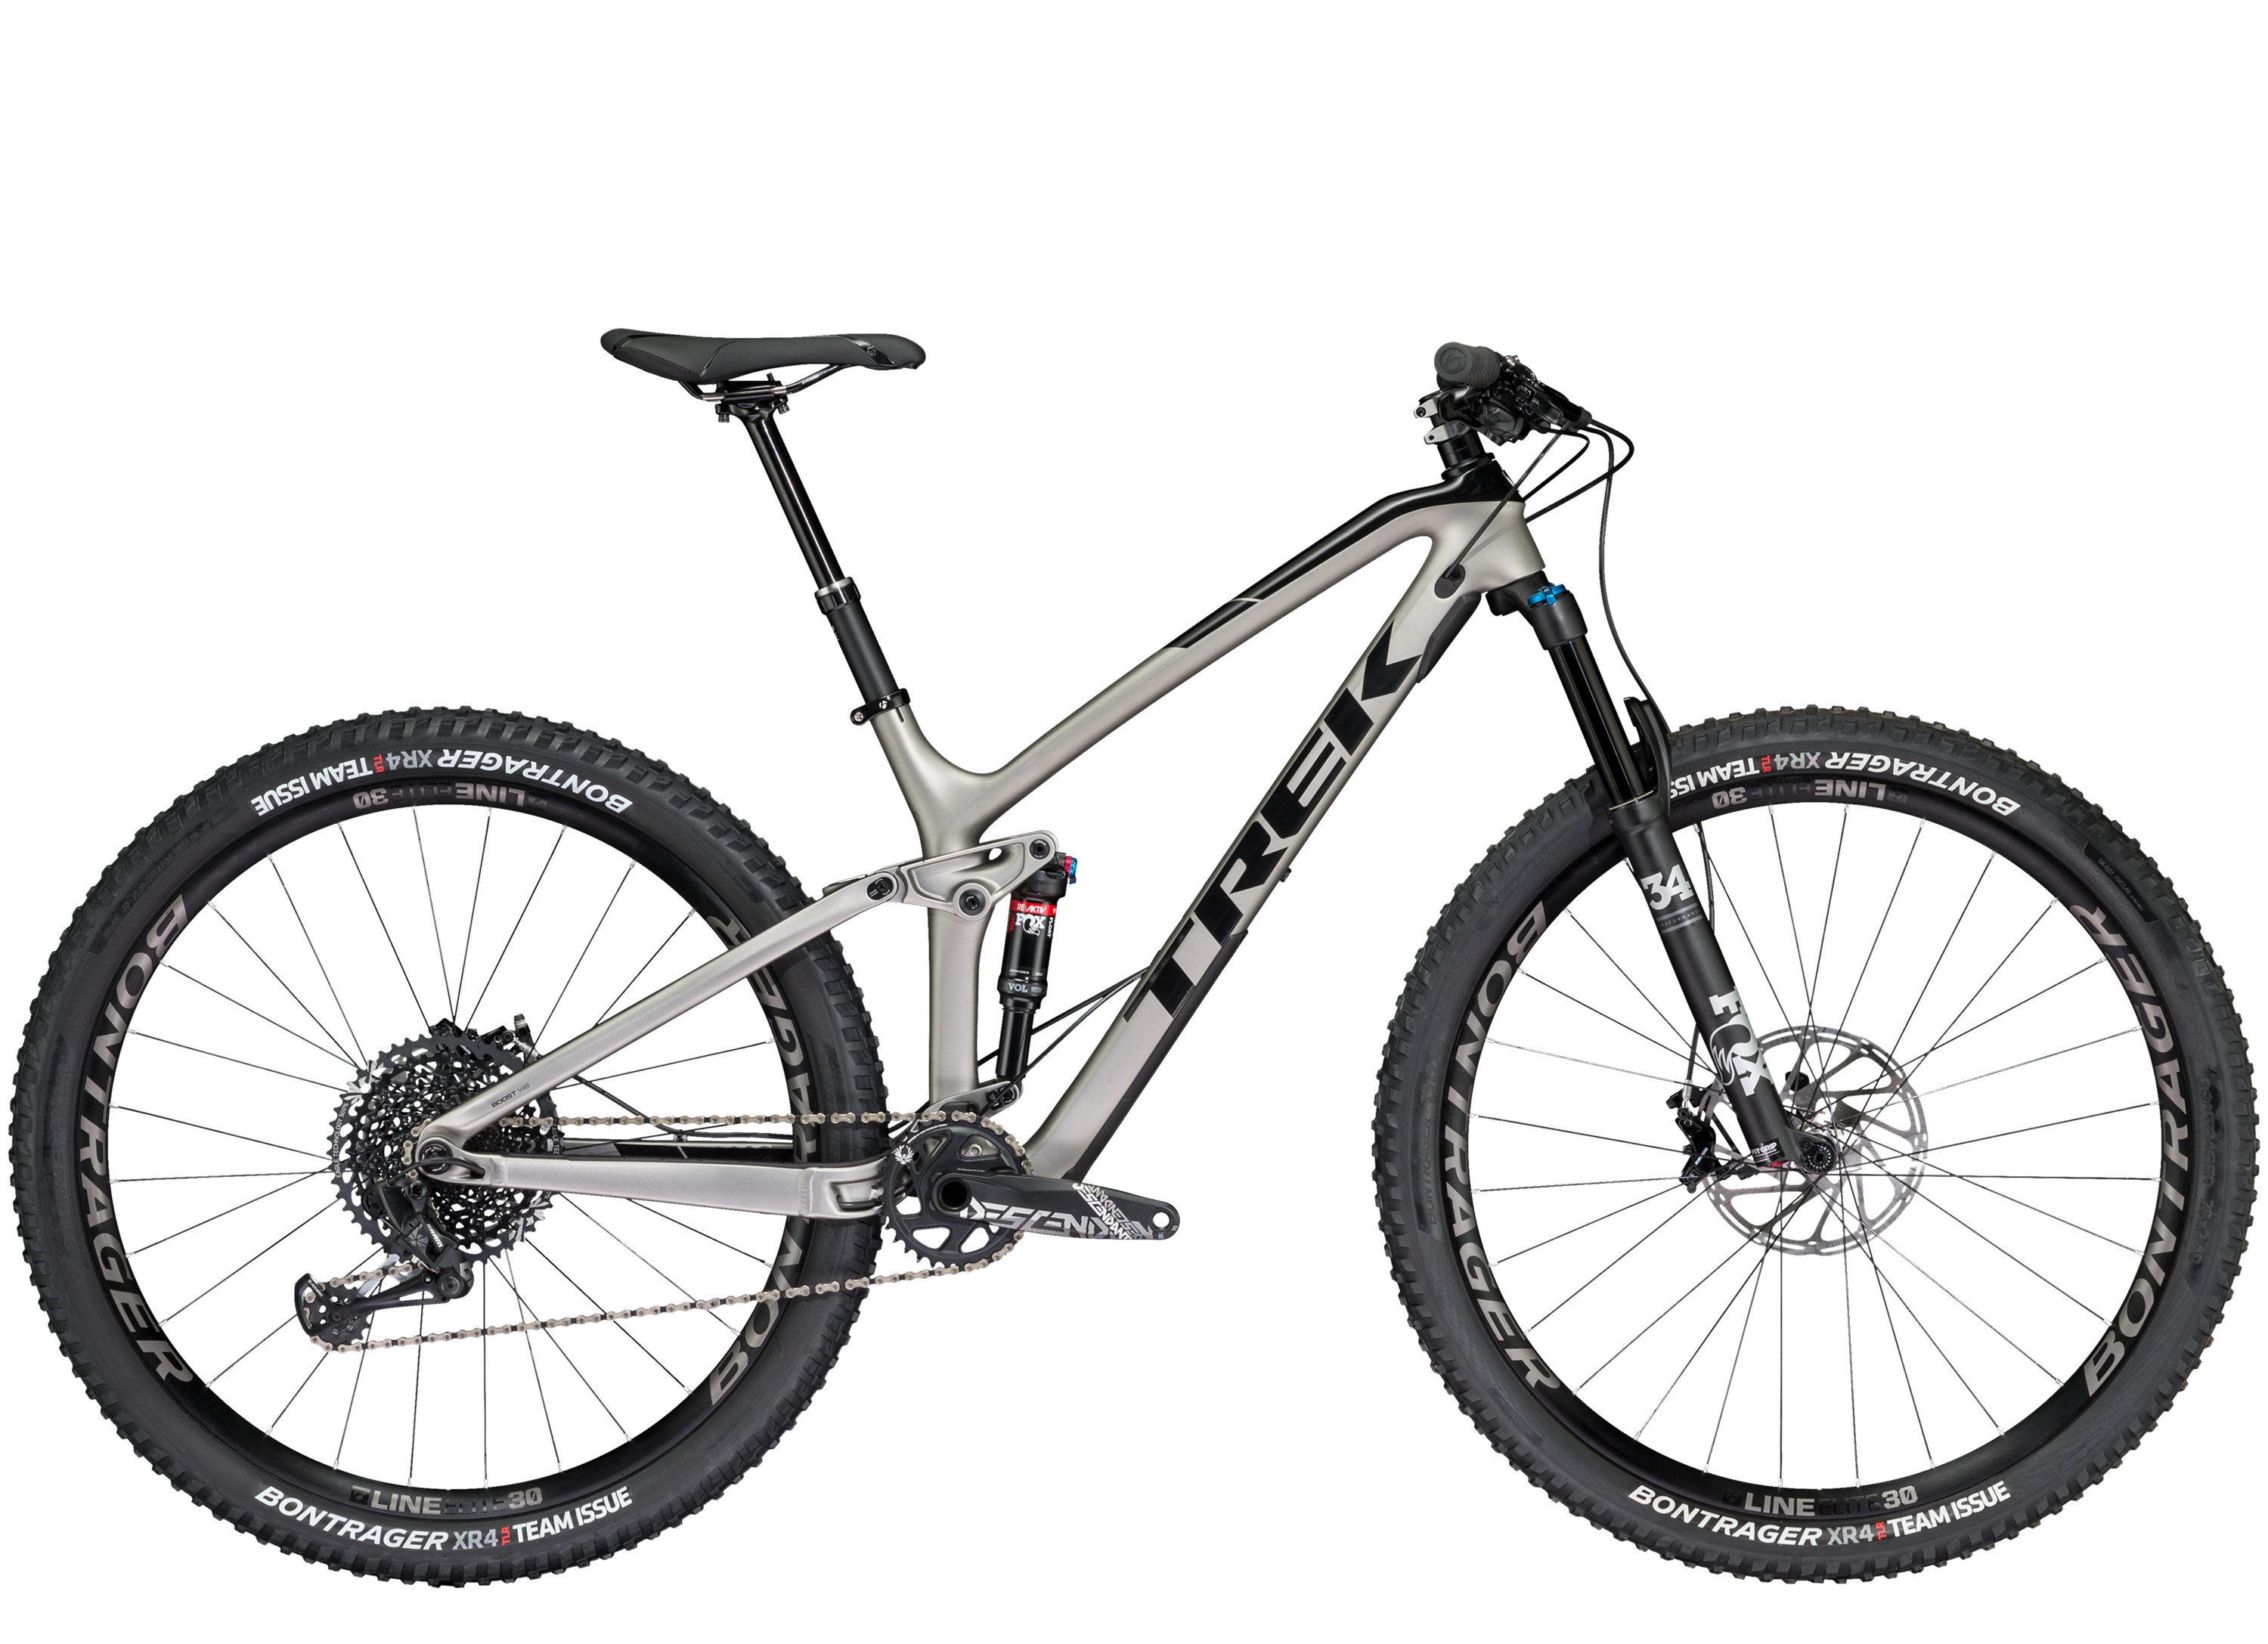 https://trek.scene7.com/is/image/TrekBicycleProducts/2145690_2018_A_1_Fuel_EX_98_29_EAG?wid=3000